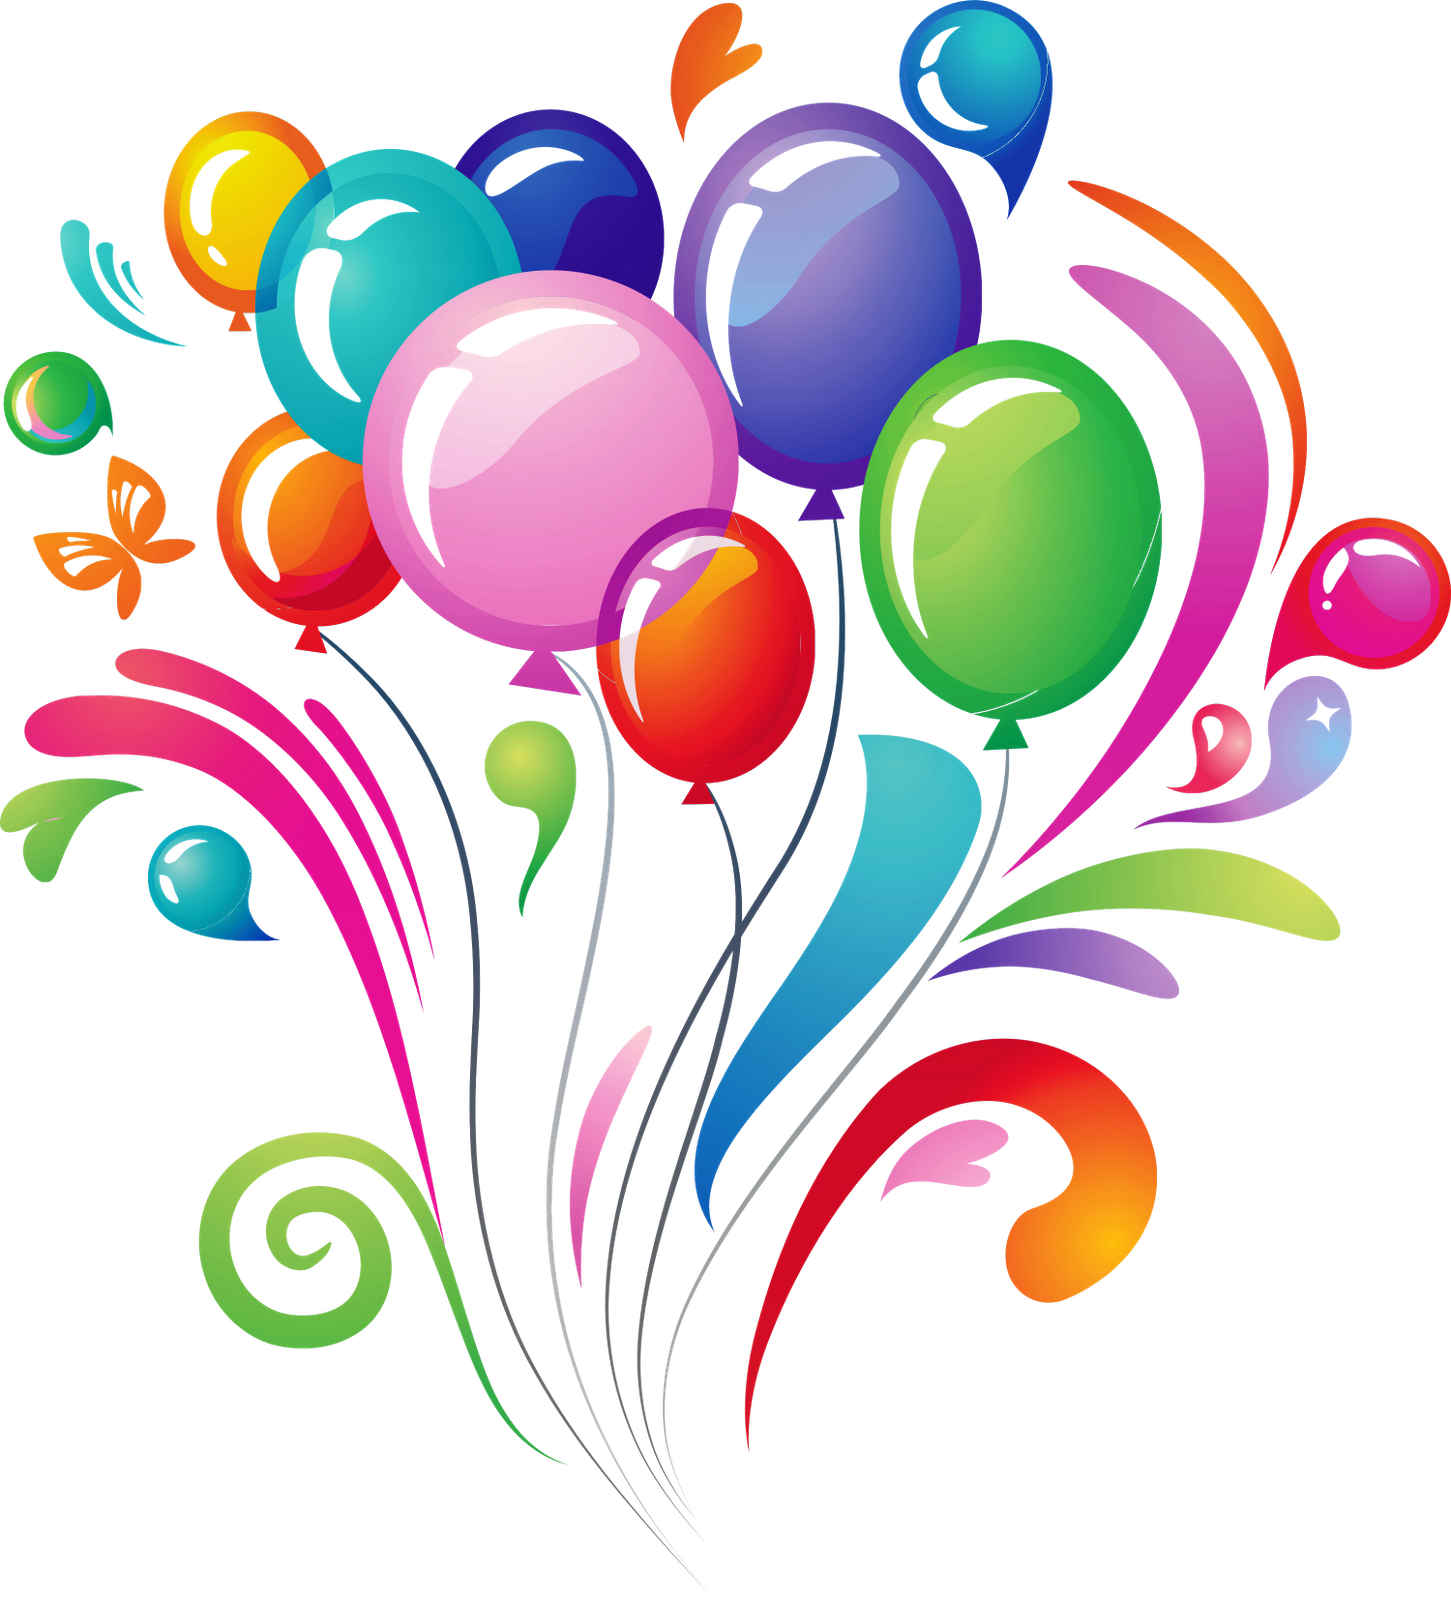 png Free happy birthday clipart graphics. Png the fizz head